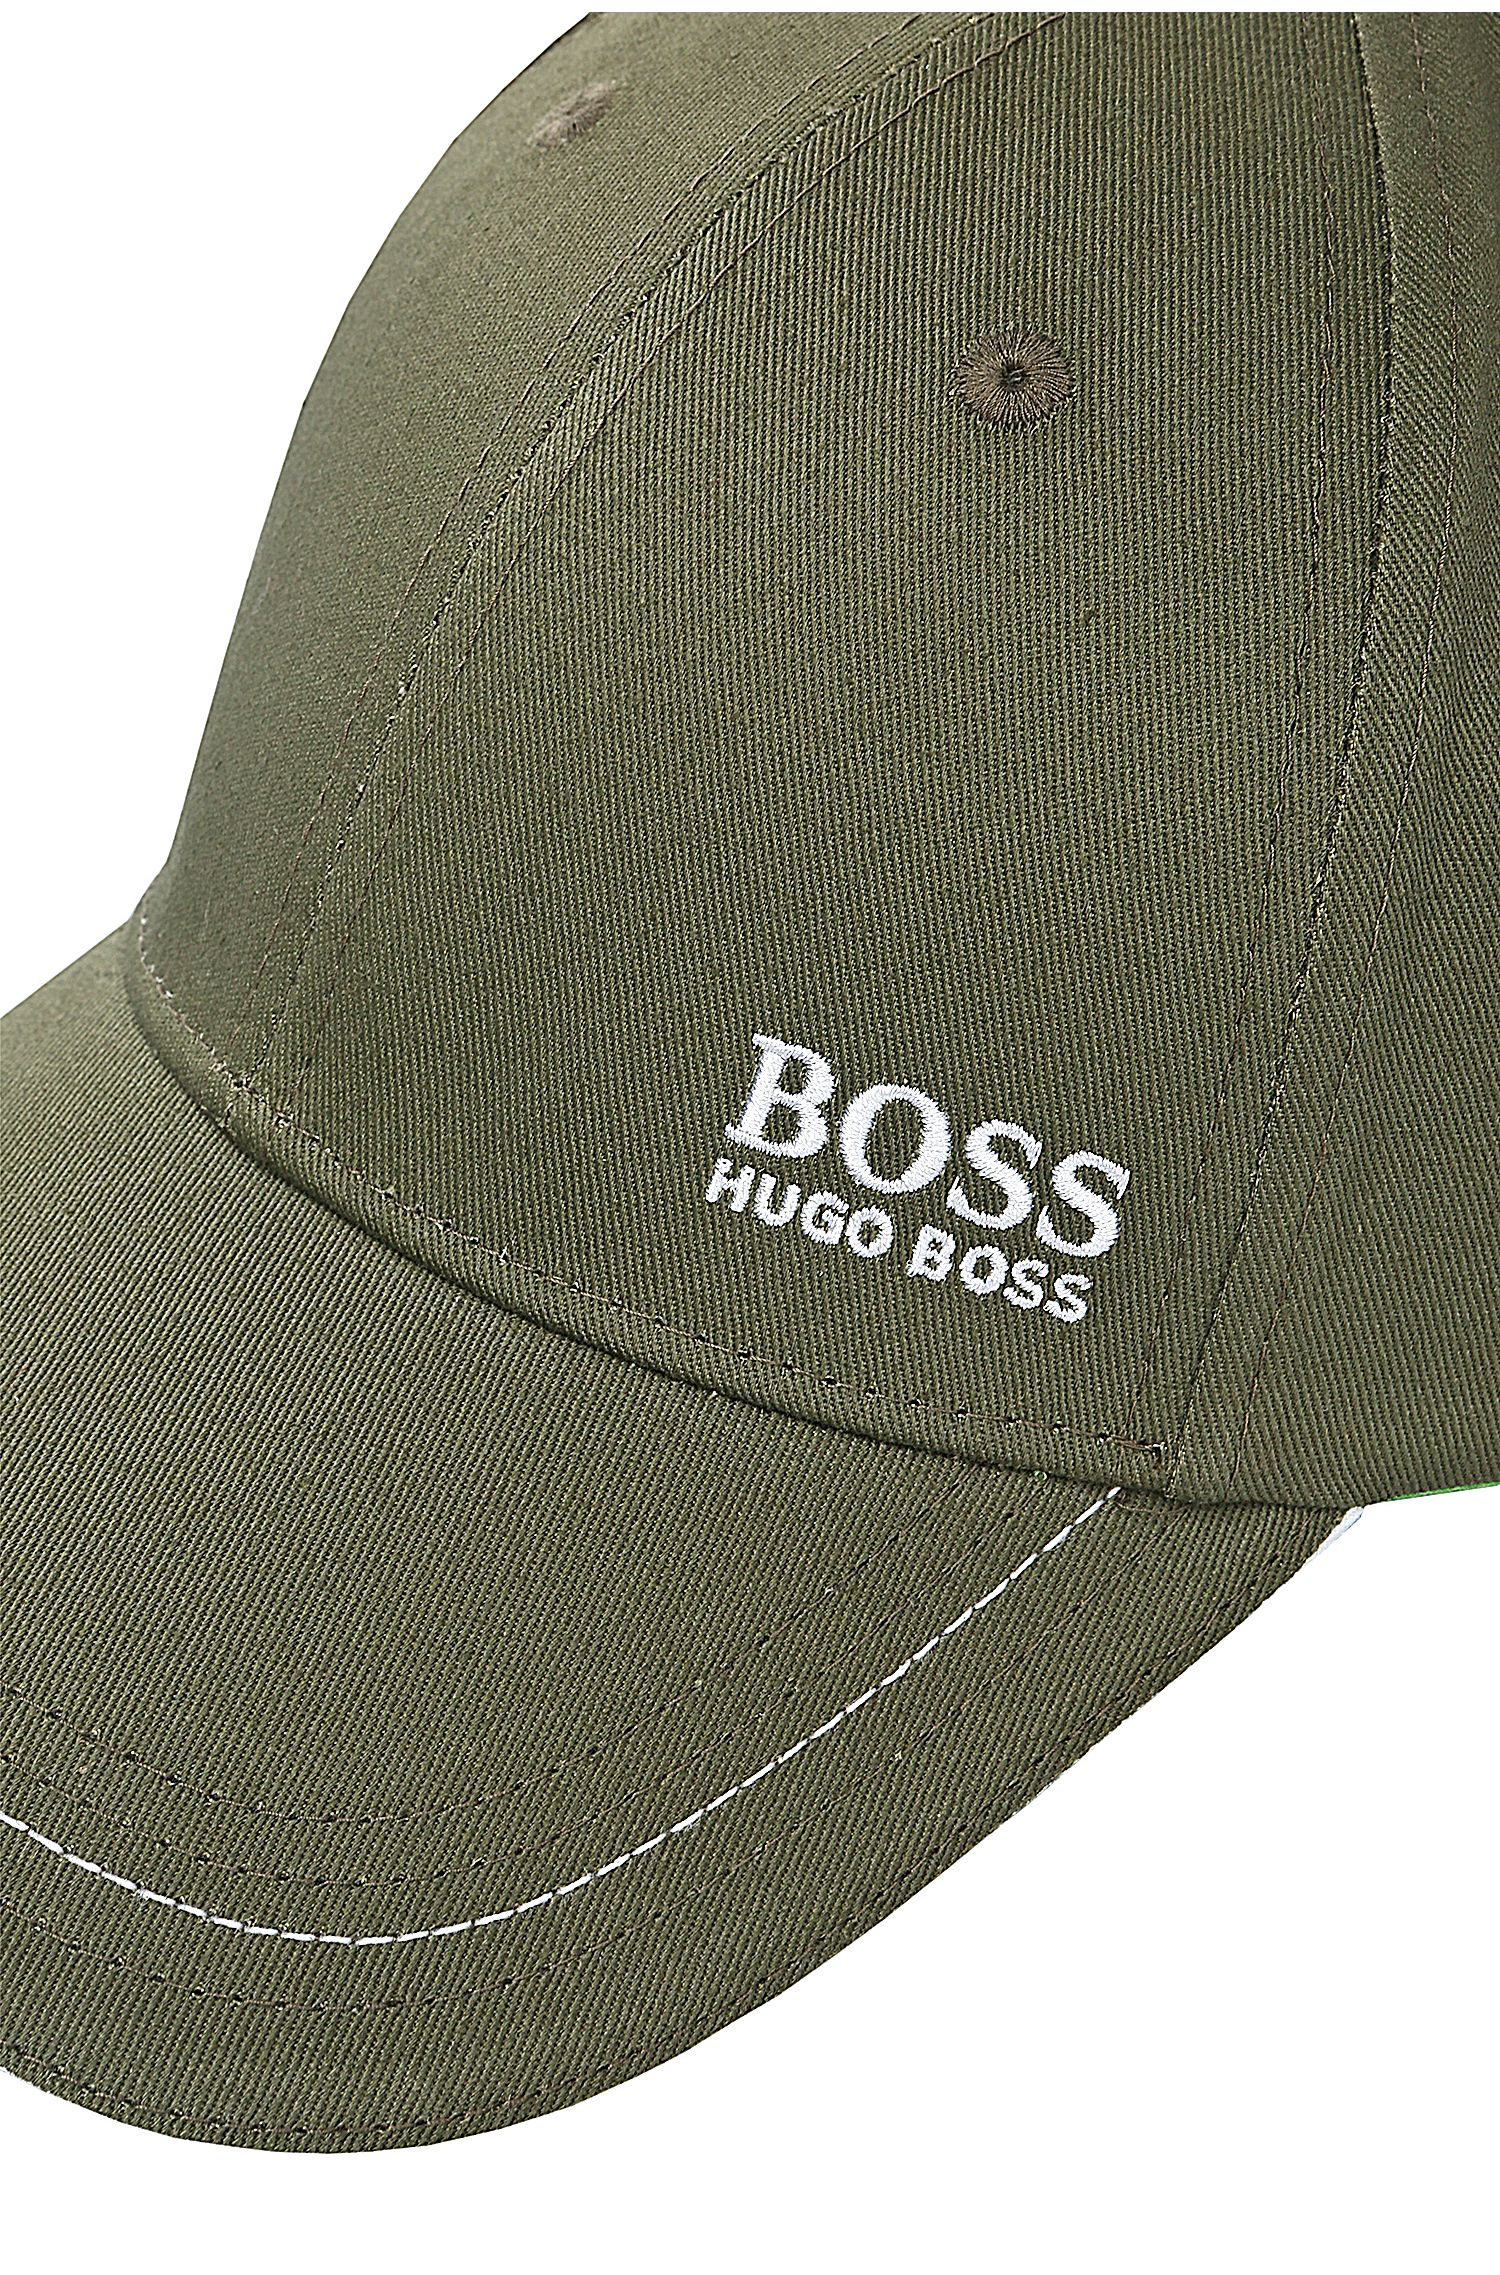 Baseball cap in cotton twill with embroidered logo